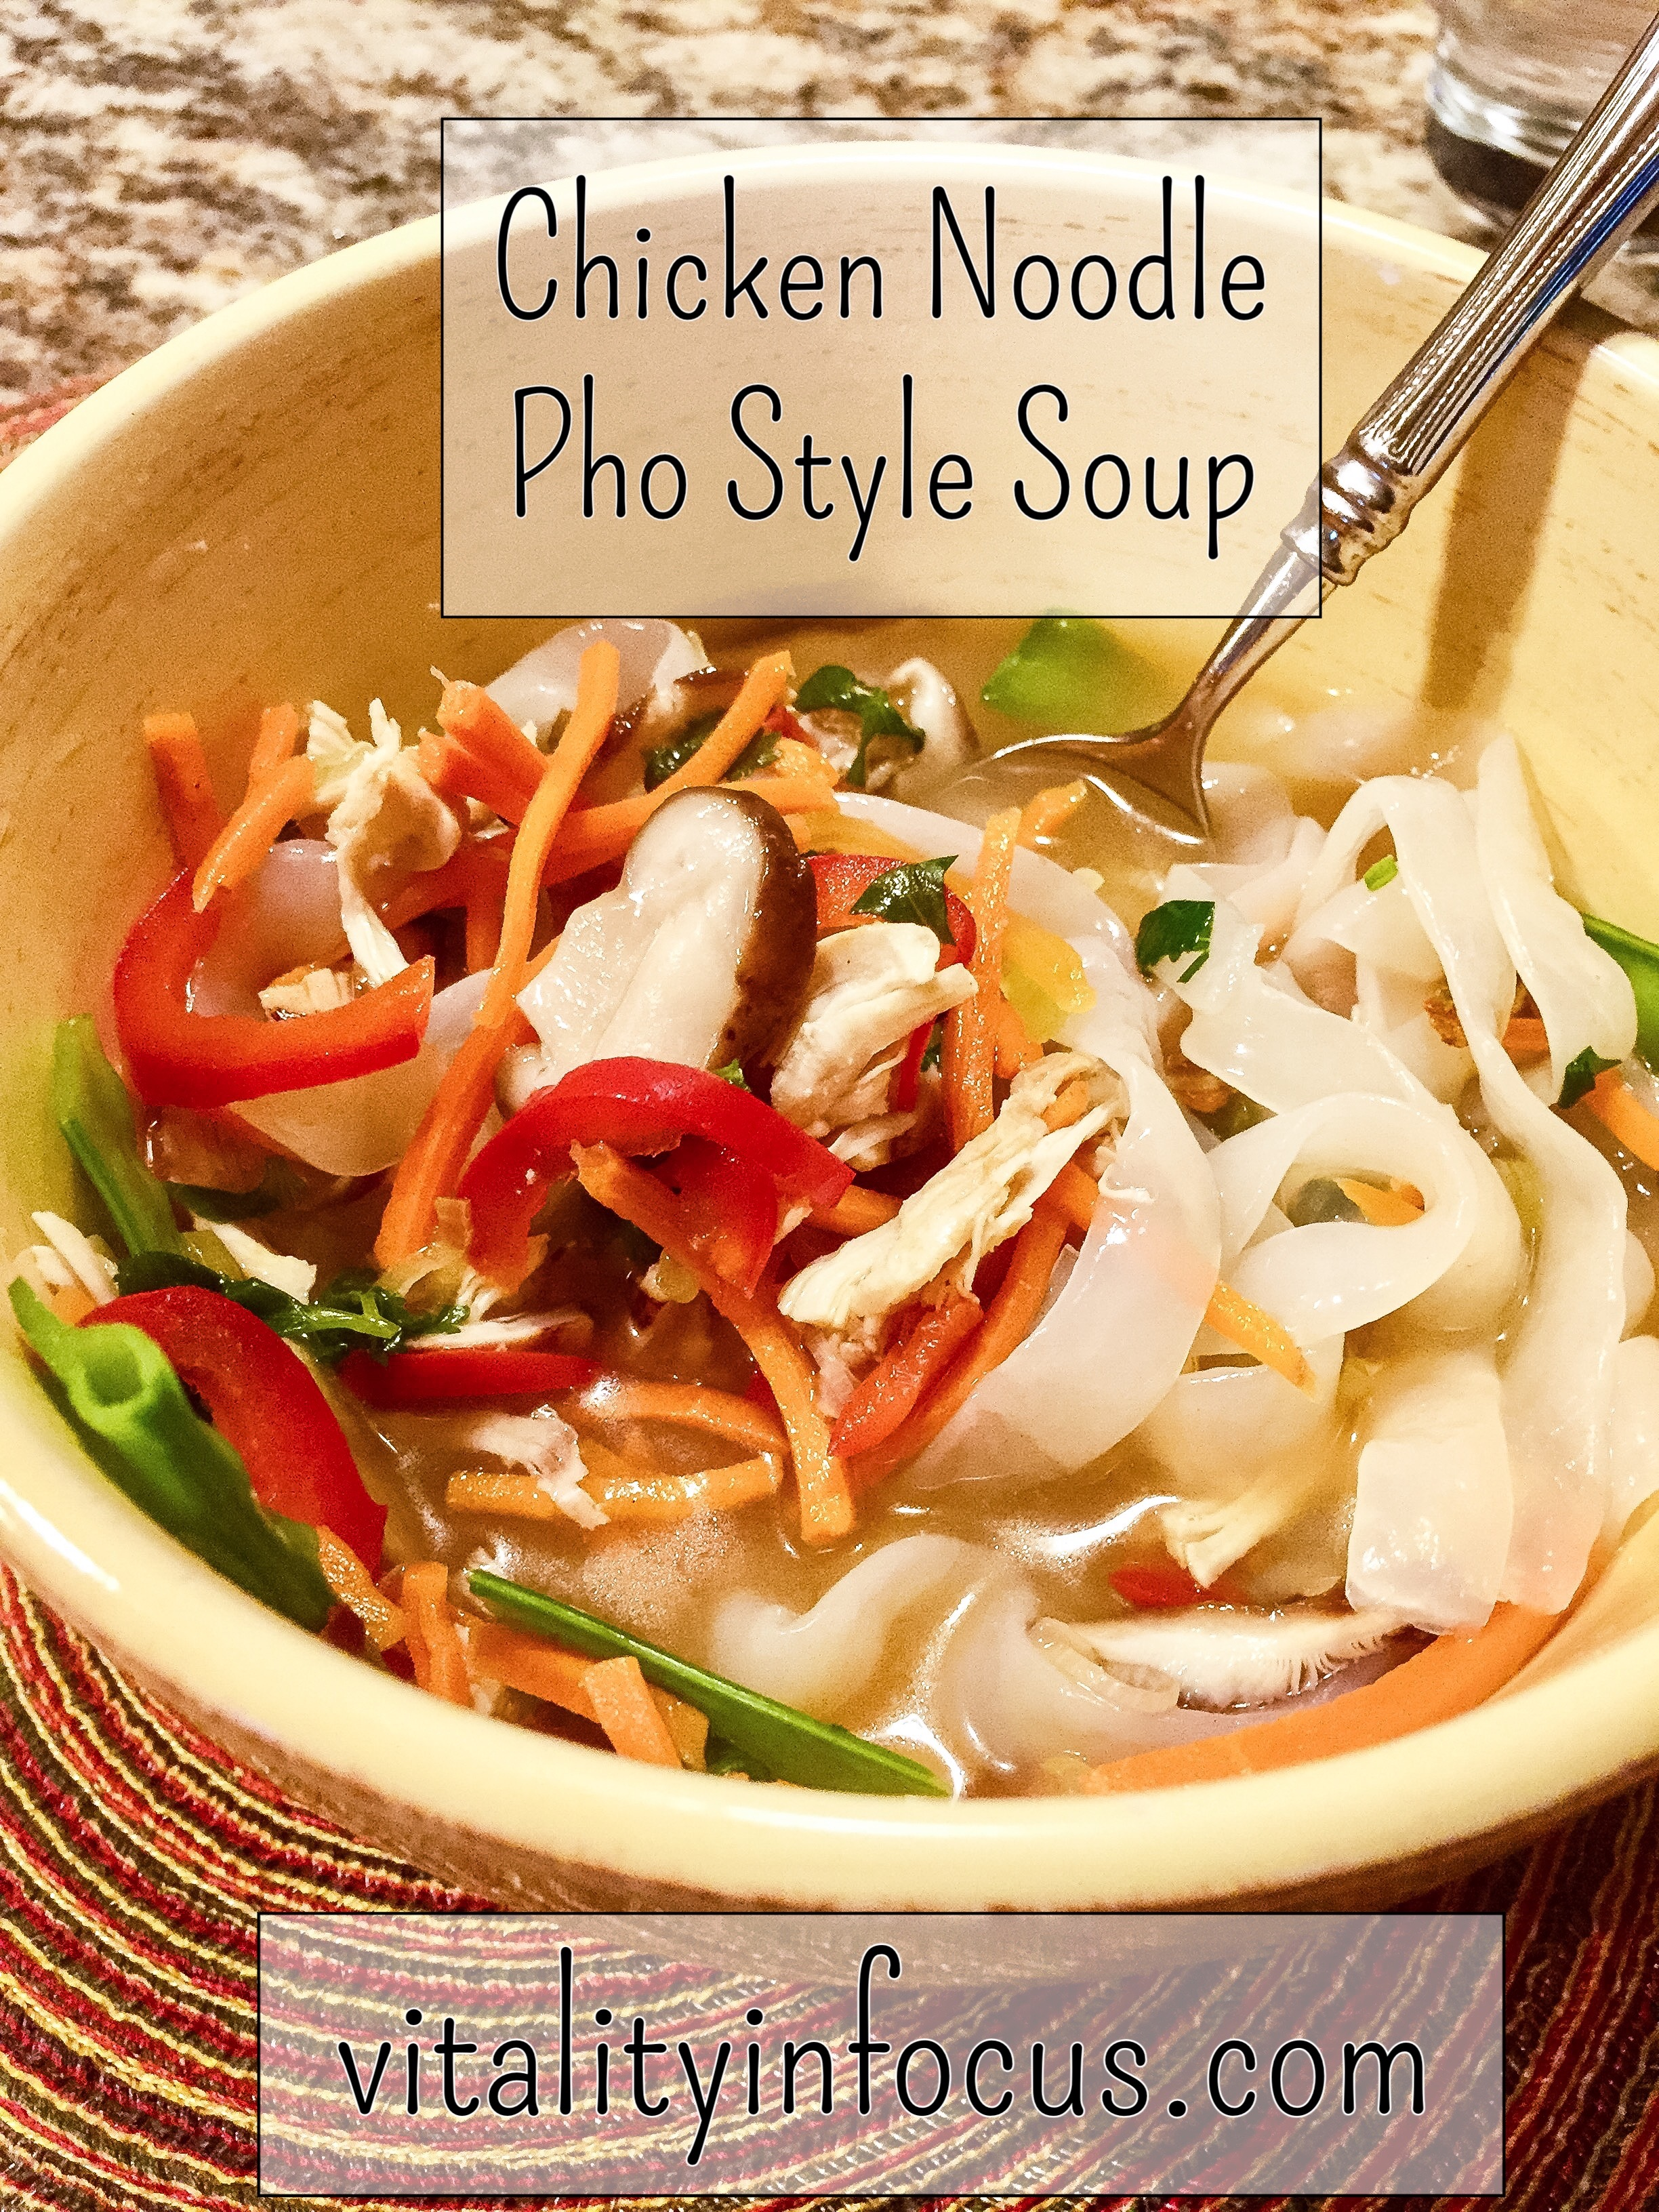 Chicken Noodle Pho-Style Soup with Vegetables